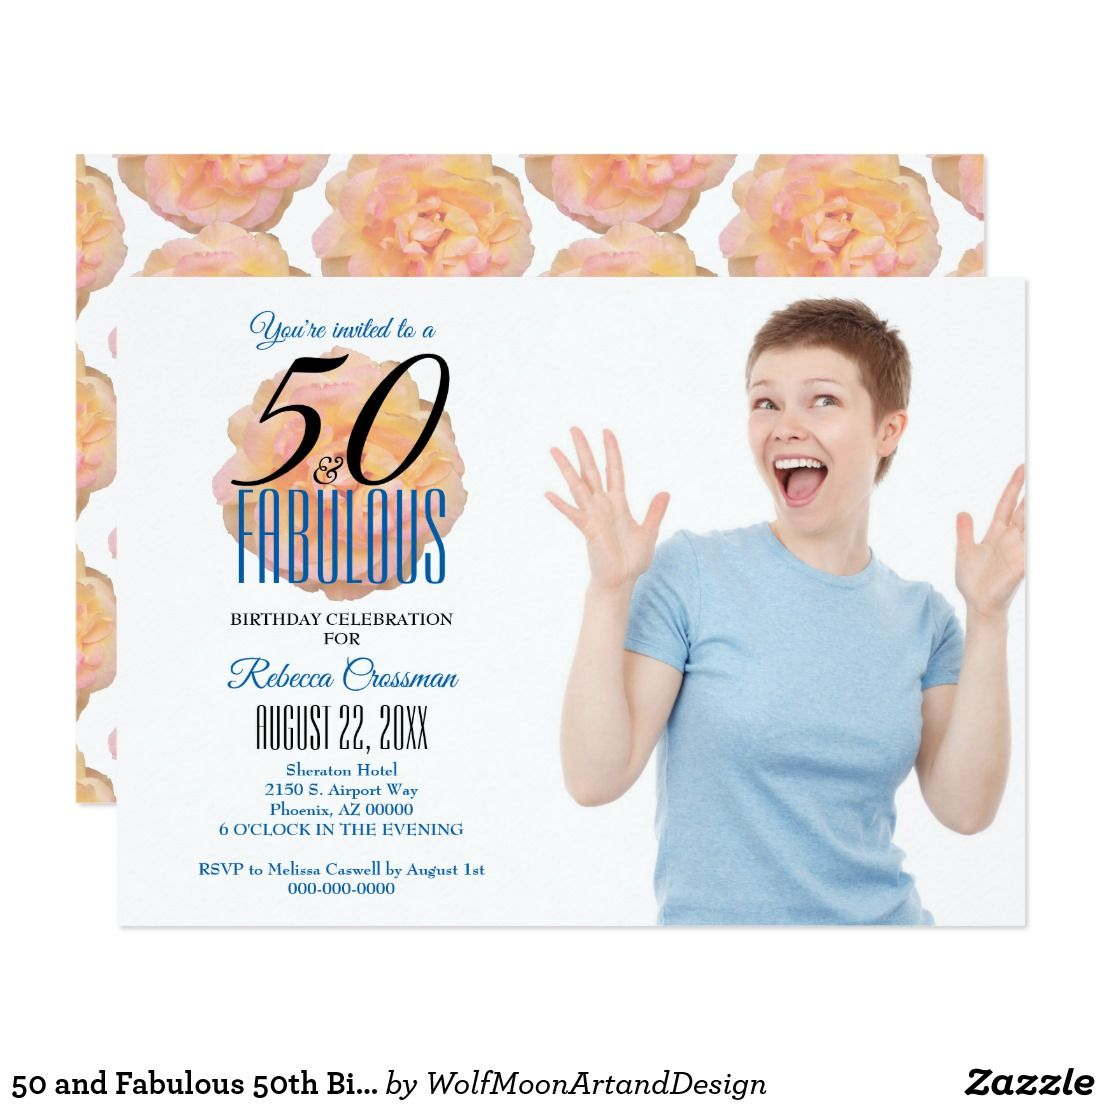 Fabulous At 50 Font: 50 And Fabulous 50th Birthday Invitation